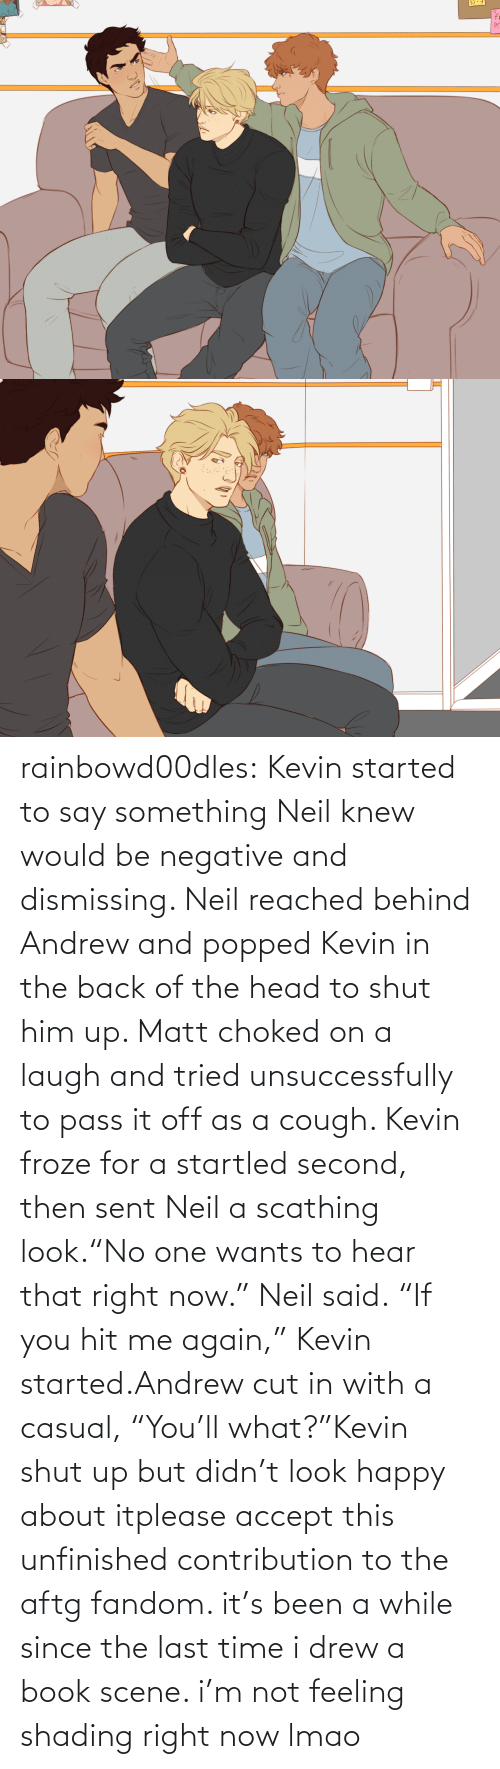 "Shut Up: rainbowd00dles:  Kevin started to say something Neil knew would be negative and dismissing. Neil reached behind Andrew and popped Kevin in the back of the head to shut him up. Matt choked on a laugh and tried unsuccessfully to pass it off as a cough. Kevin froze for a startled second, then sent Neil a scathing look.""No one wants to hear that right now."" Neil said. ""If you hit me again,"" Kevin started.Andrew cut in with a casual, ""You'll what?""Kevin shut up but didn't look happy about itplease accept this unfinished contribution to the aftg fandom. it's been a while since the last time i drew a book scene. i'm not feeling shading right now lmao"